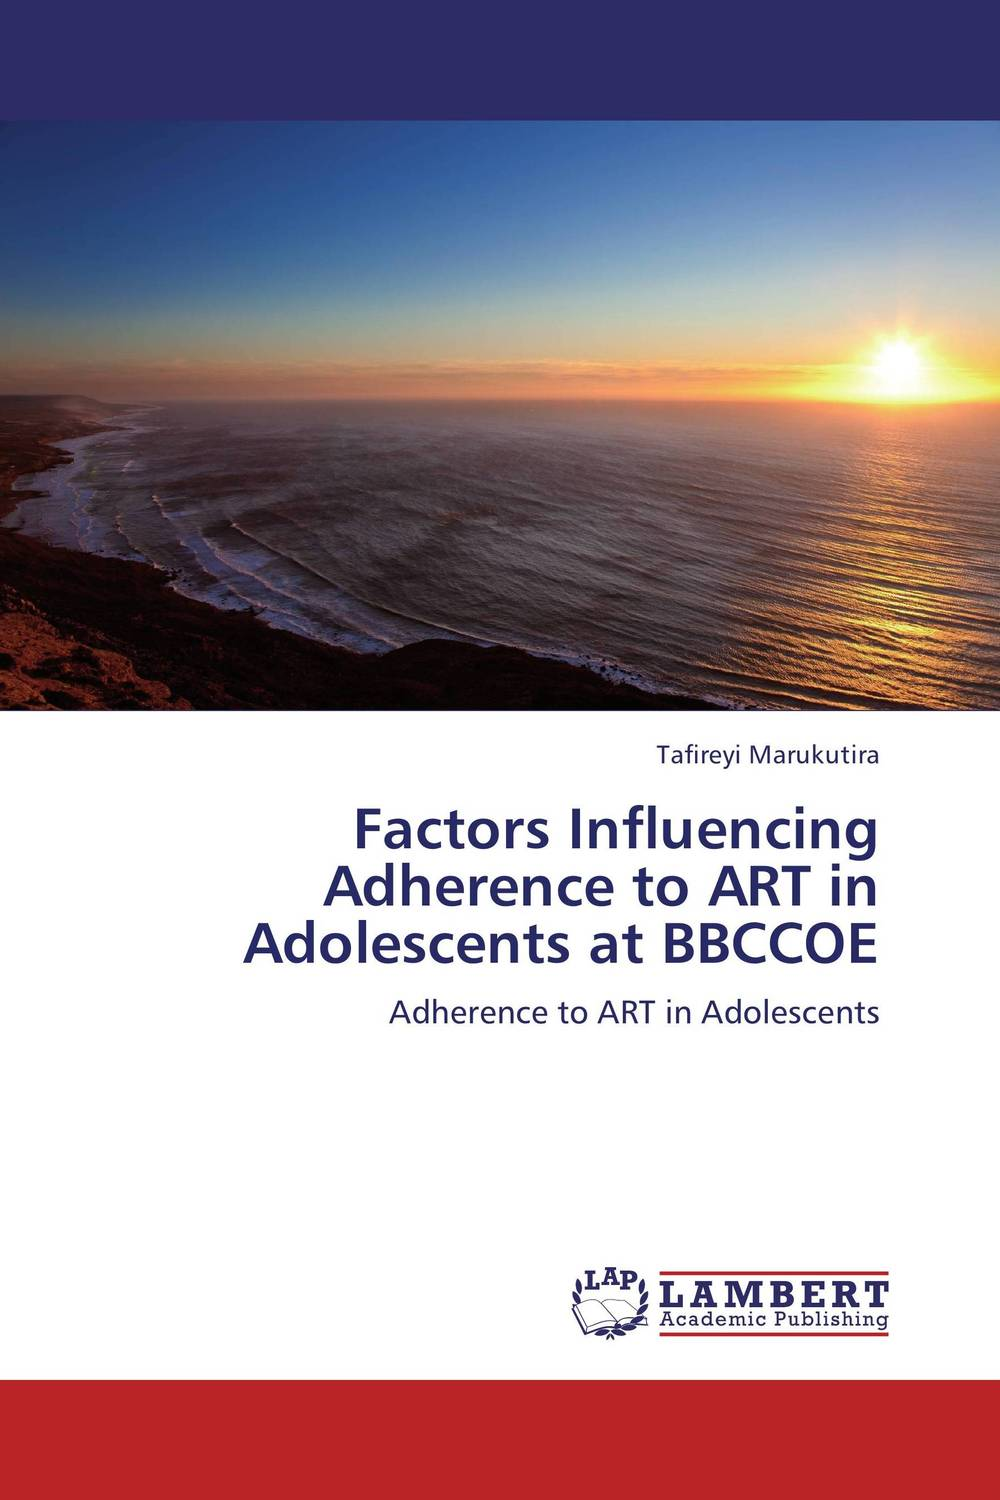 Factors Influencing Adherence to ART in Adolescents at BBCCOE factors influencing the growth of informal rental housing in swaziland